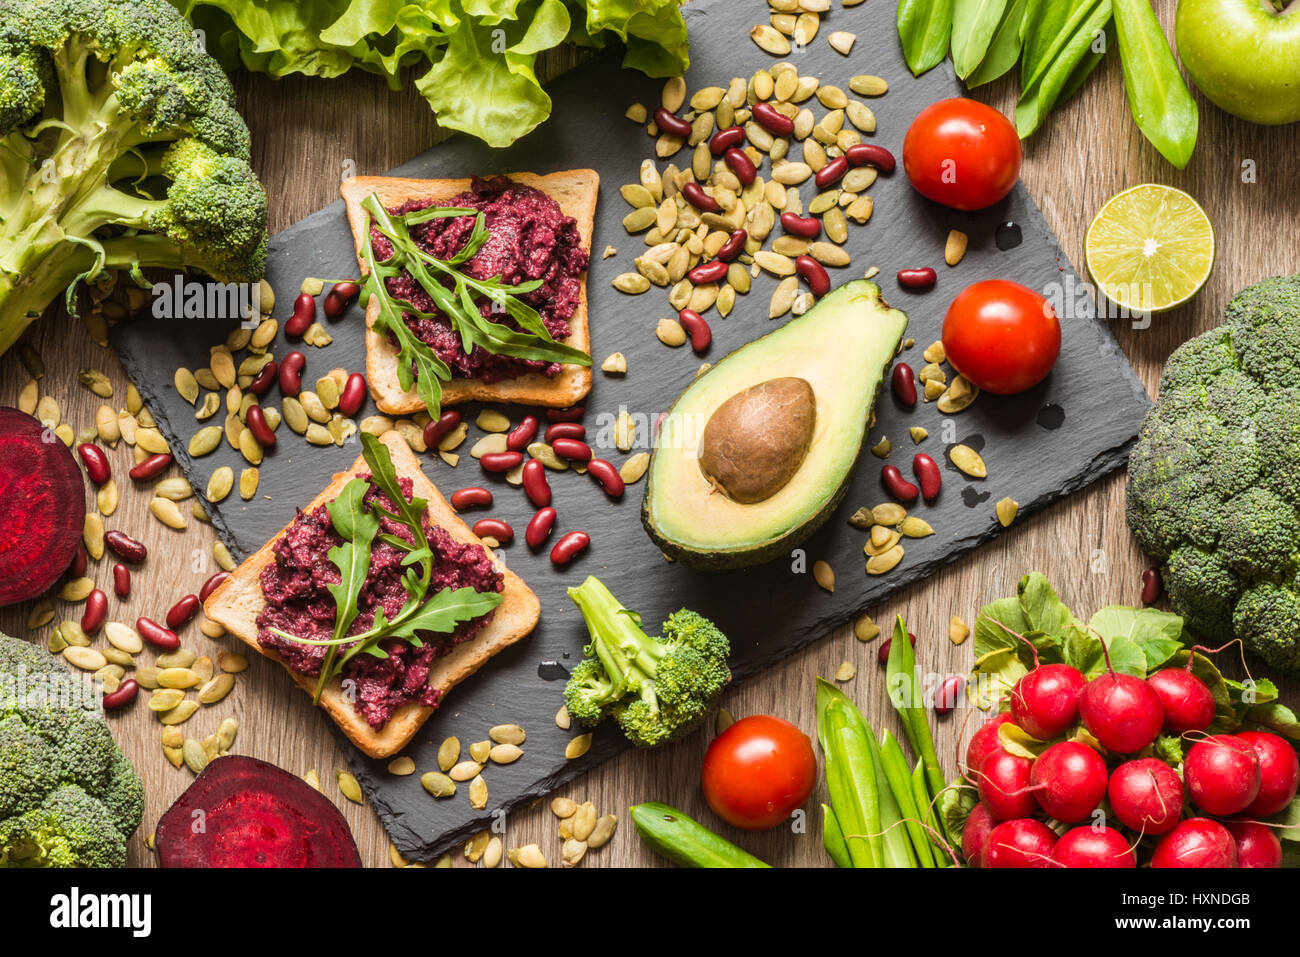 Healthy vegan food. Sandwiches and fresh vegetables on wooden background. - Stock Image